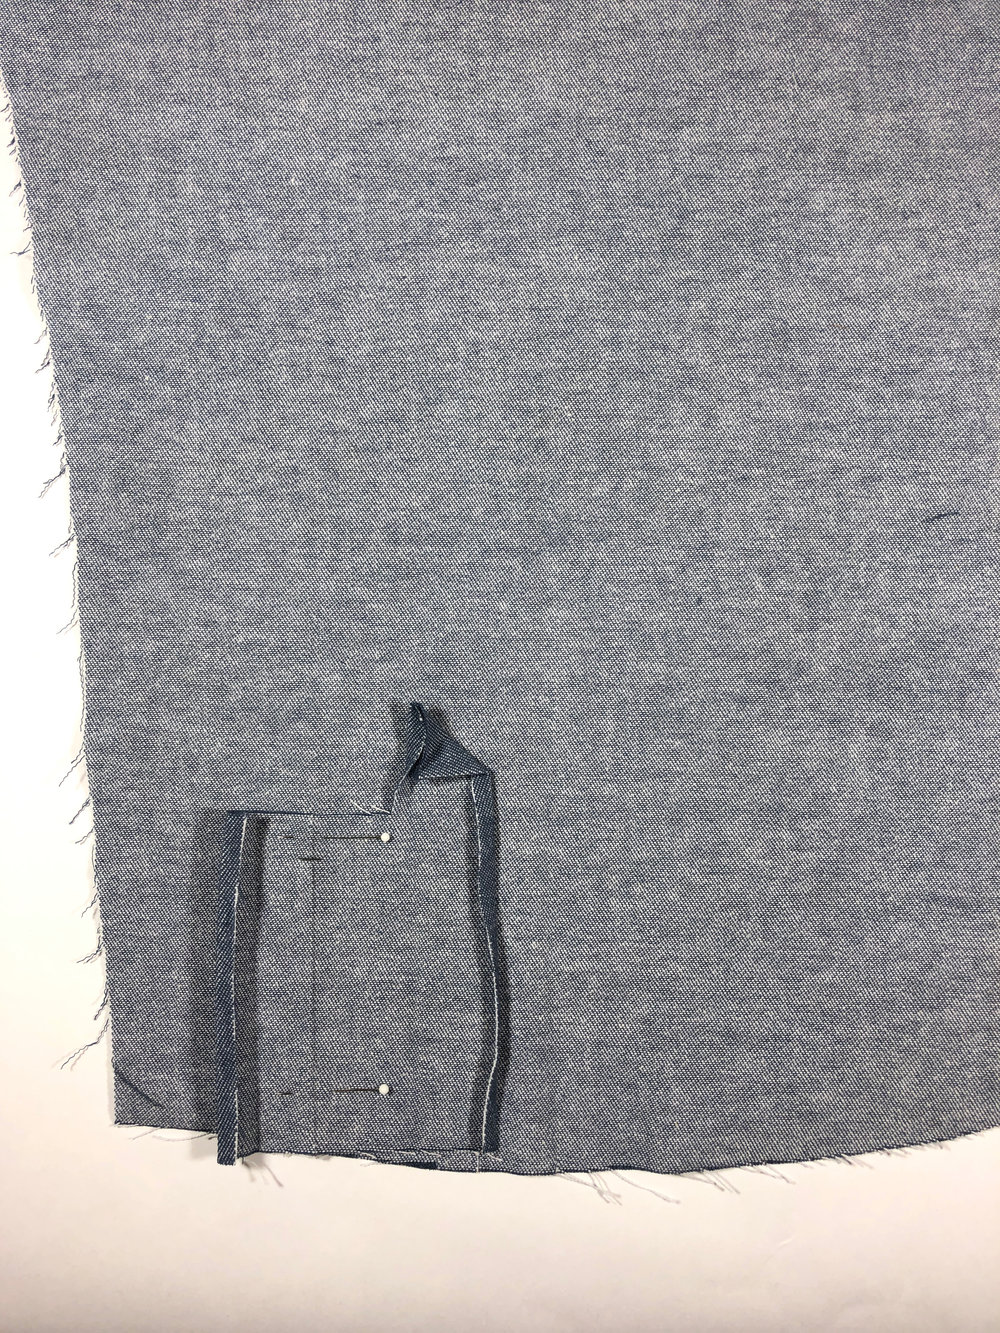 46. Unfold everything and place the placket on the WRONG side of the left sleeve. (Both placket and sleeve will be WRONG side up at this stage.)  Line the cutting line up with the left most notch on the sleeve, and pin into place. Keep the marked cutting line parallel with the sleeve grain line, by aligning the notch mark on the placket to the dot mark on the sleeve.